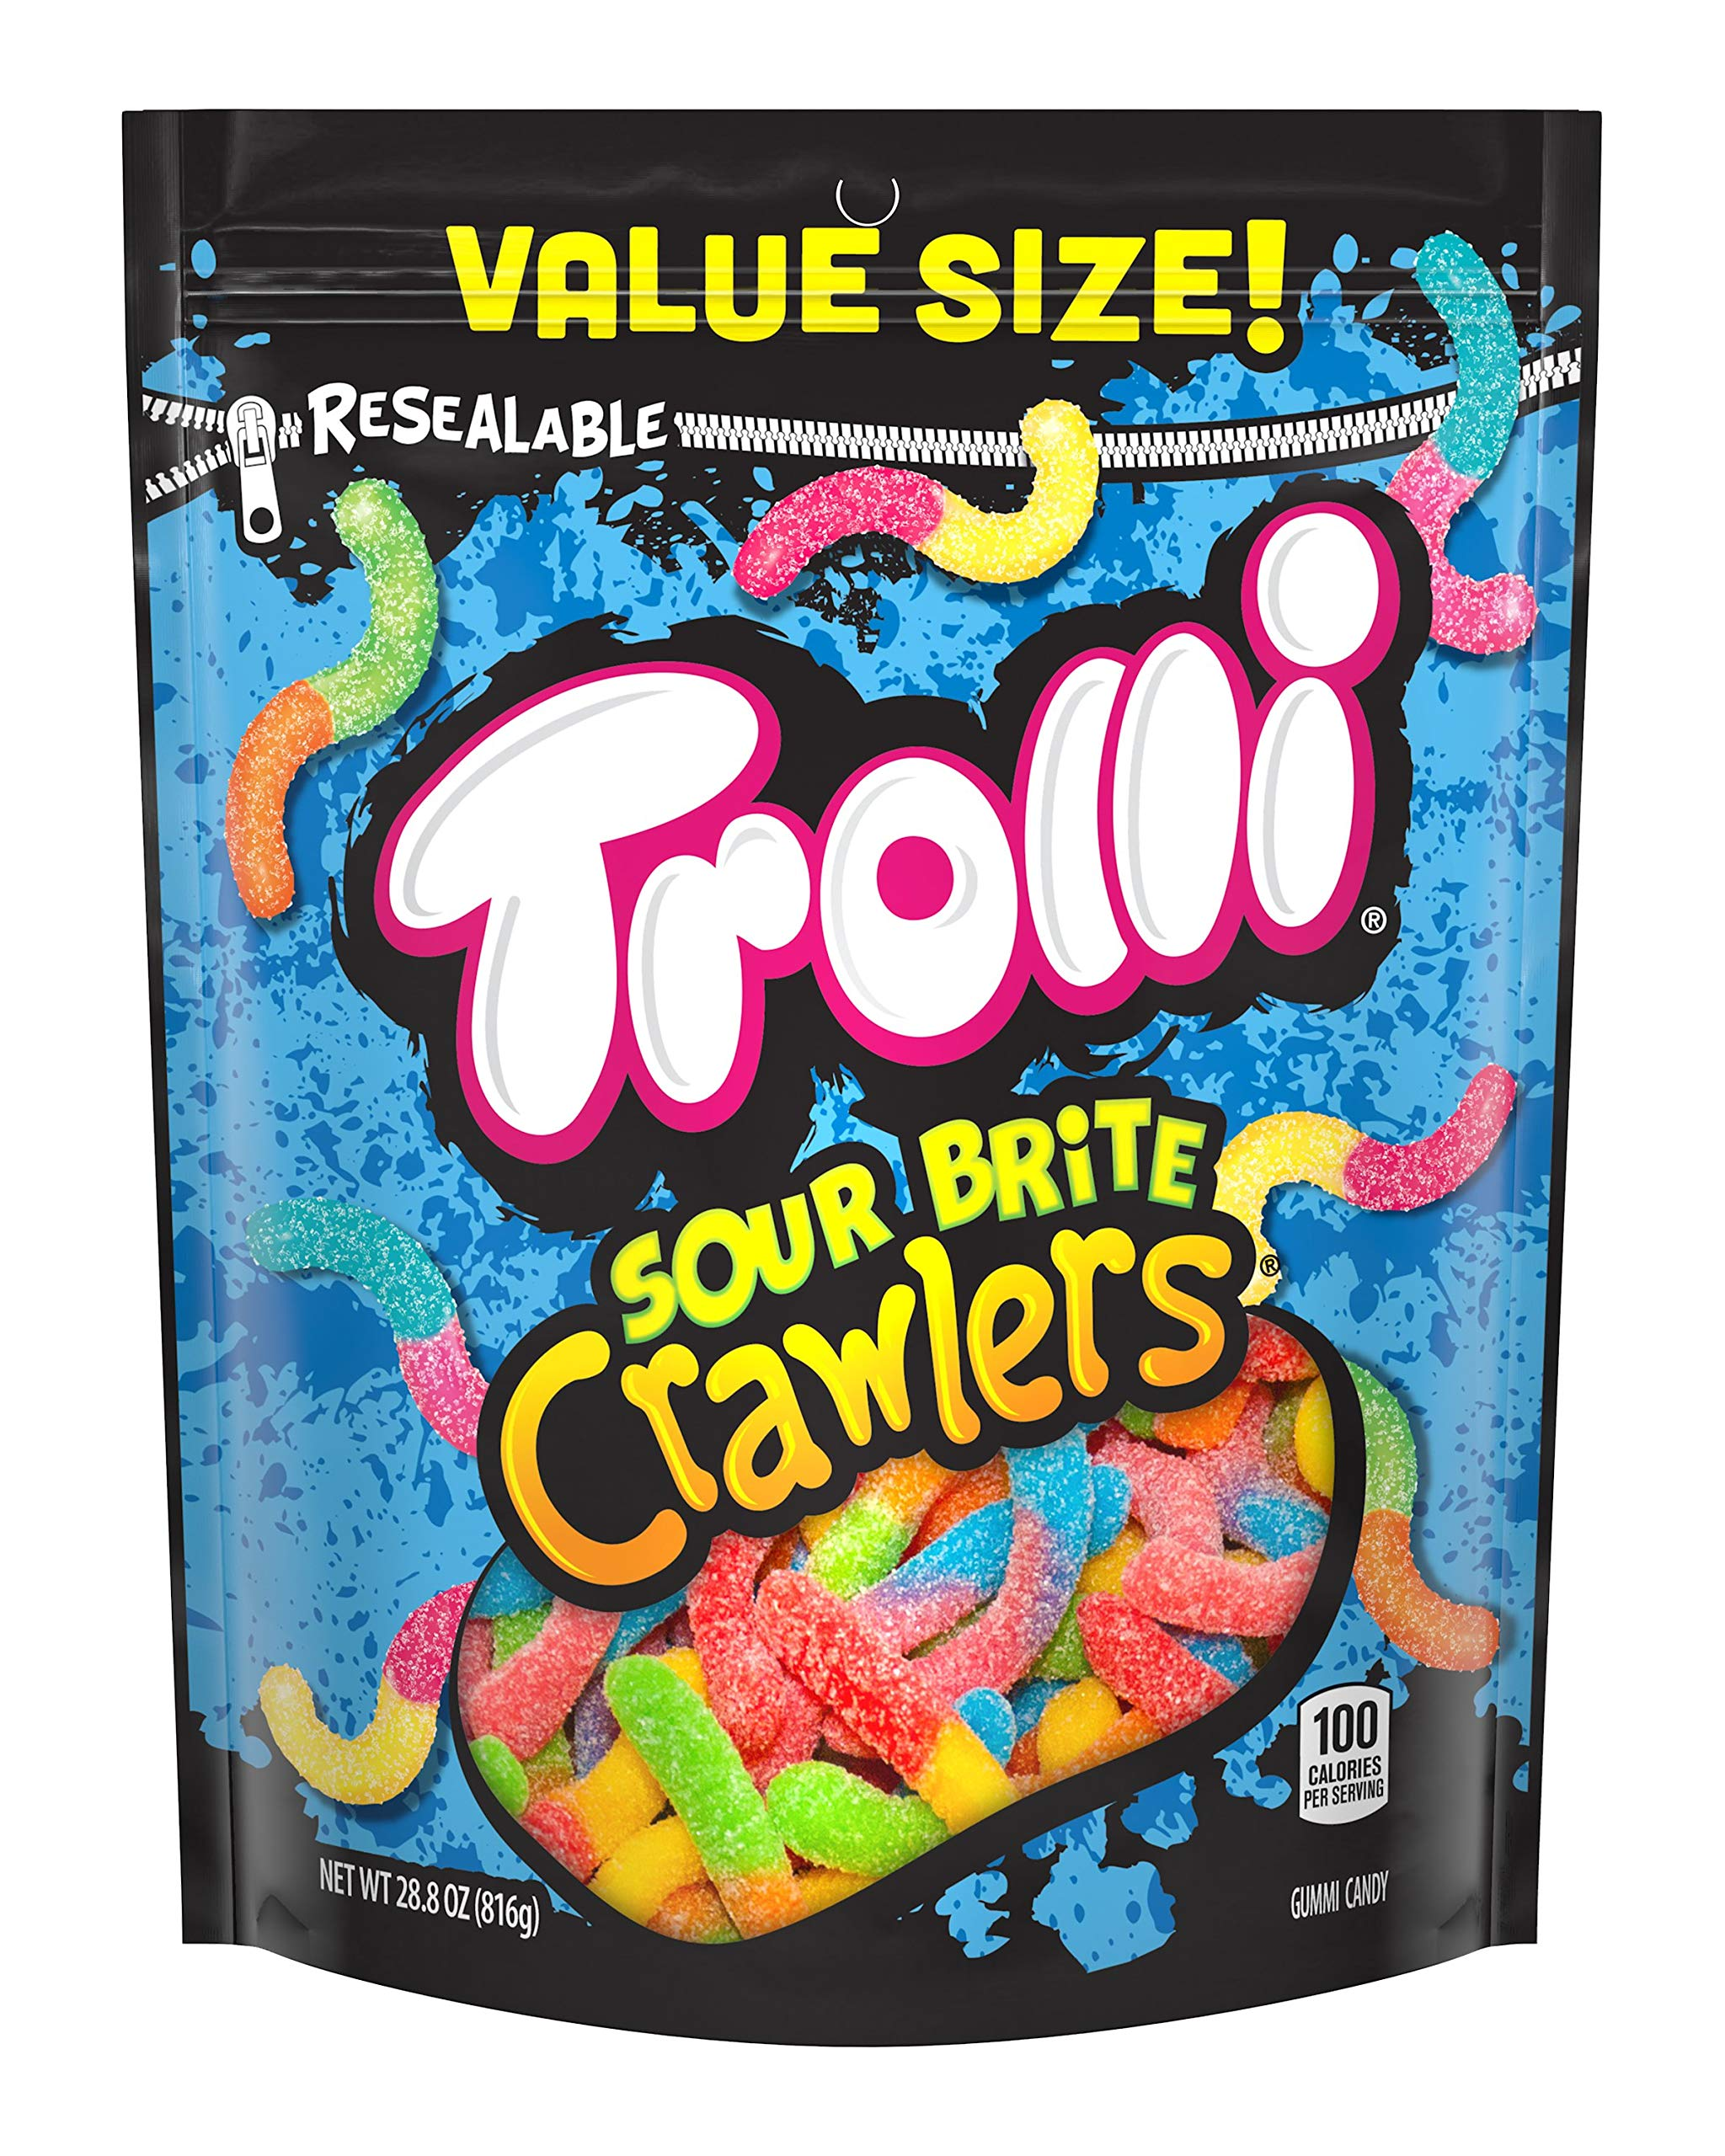 Trolli Sour Brite Crawlers Gummy Worms, 28 Ounce Bag Sour Gummy Worms